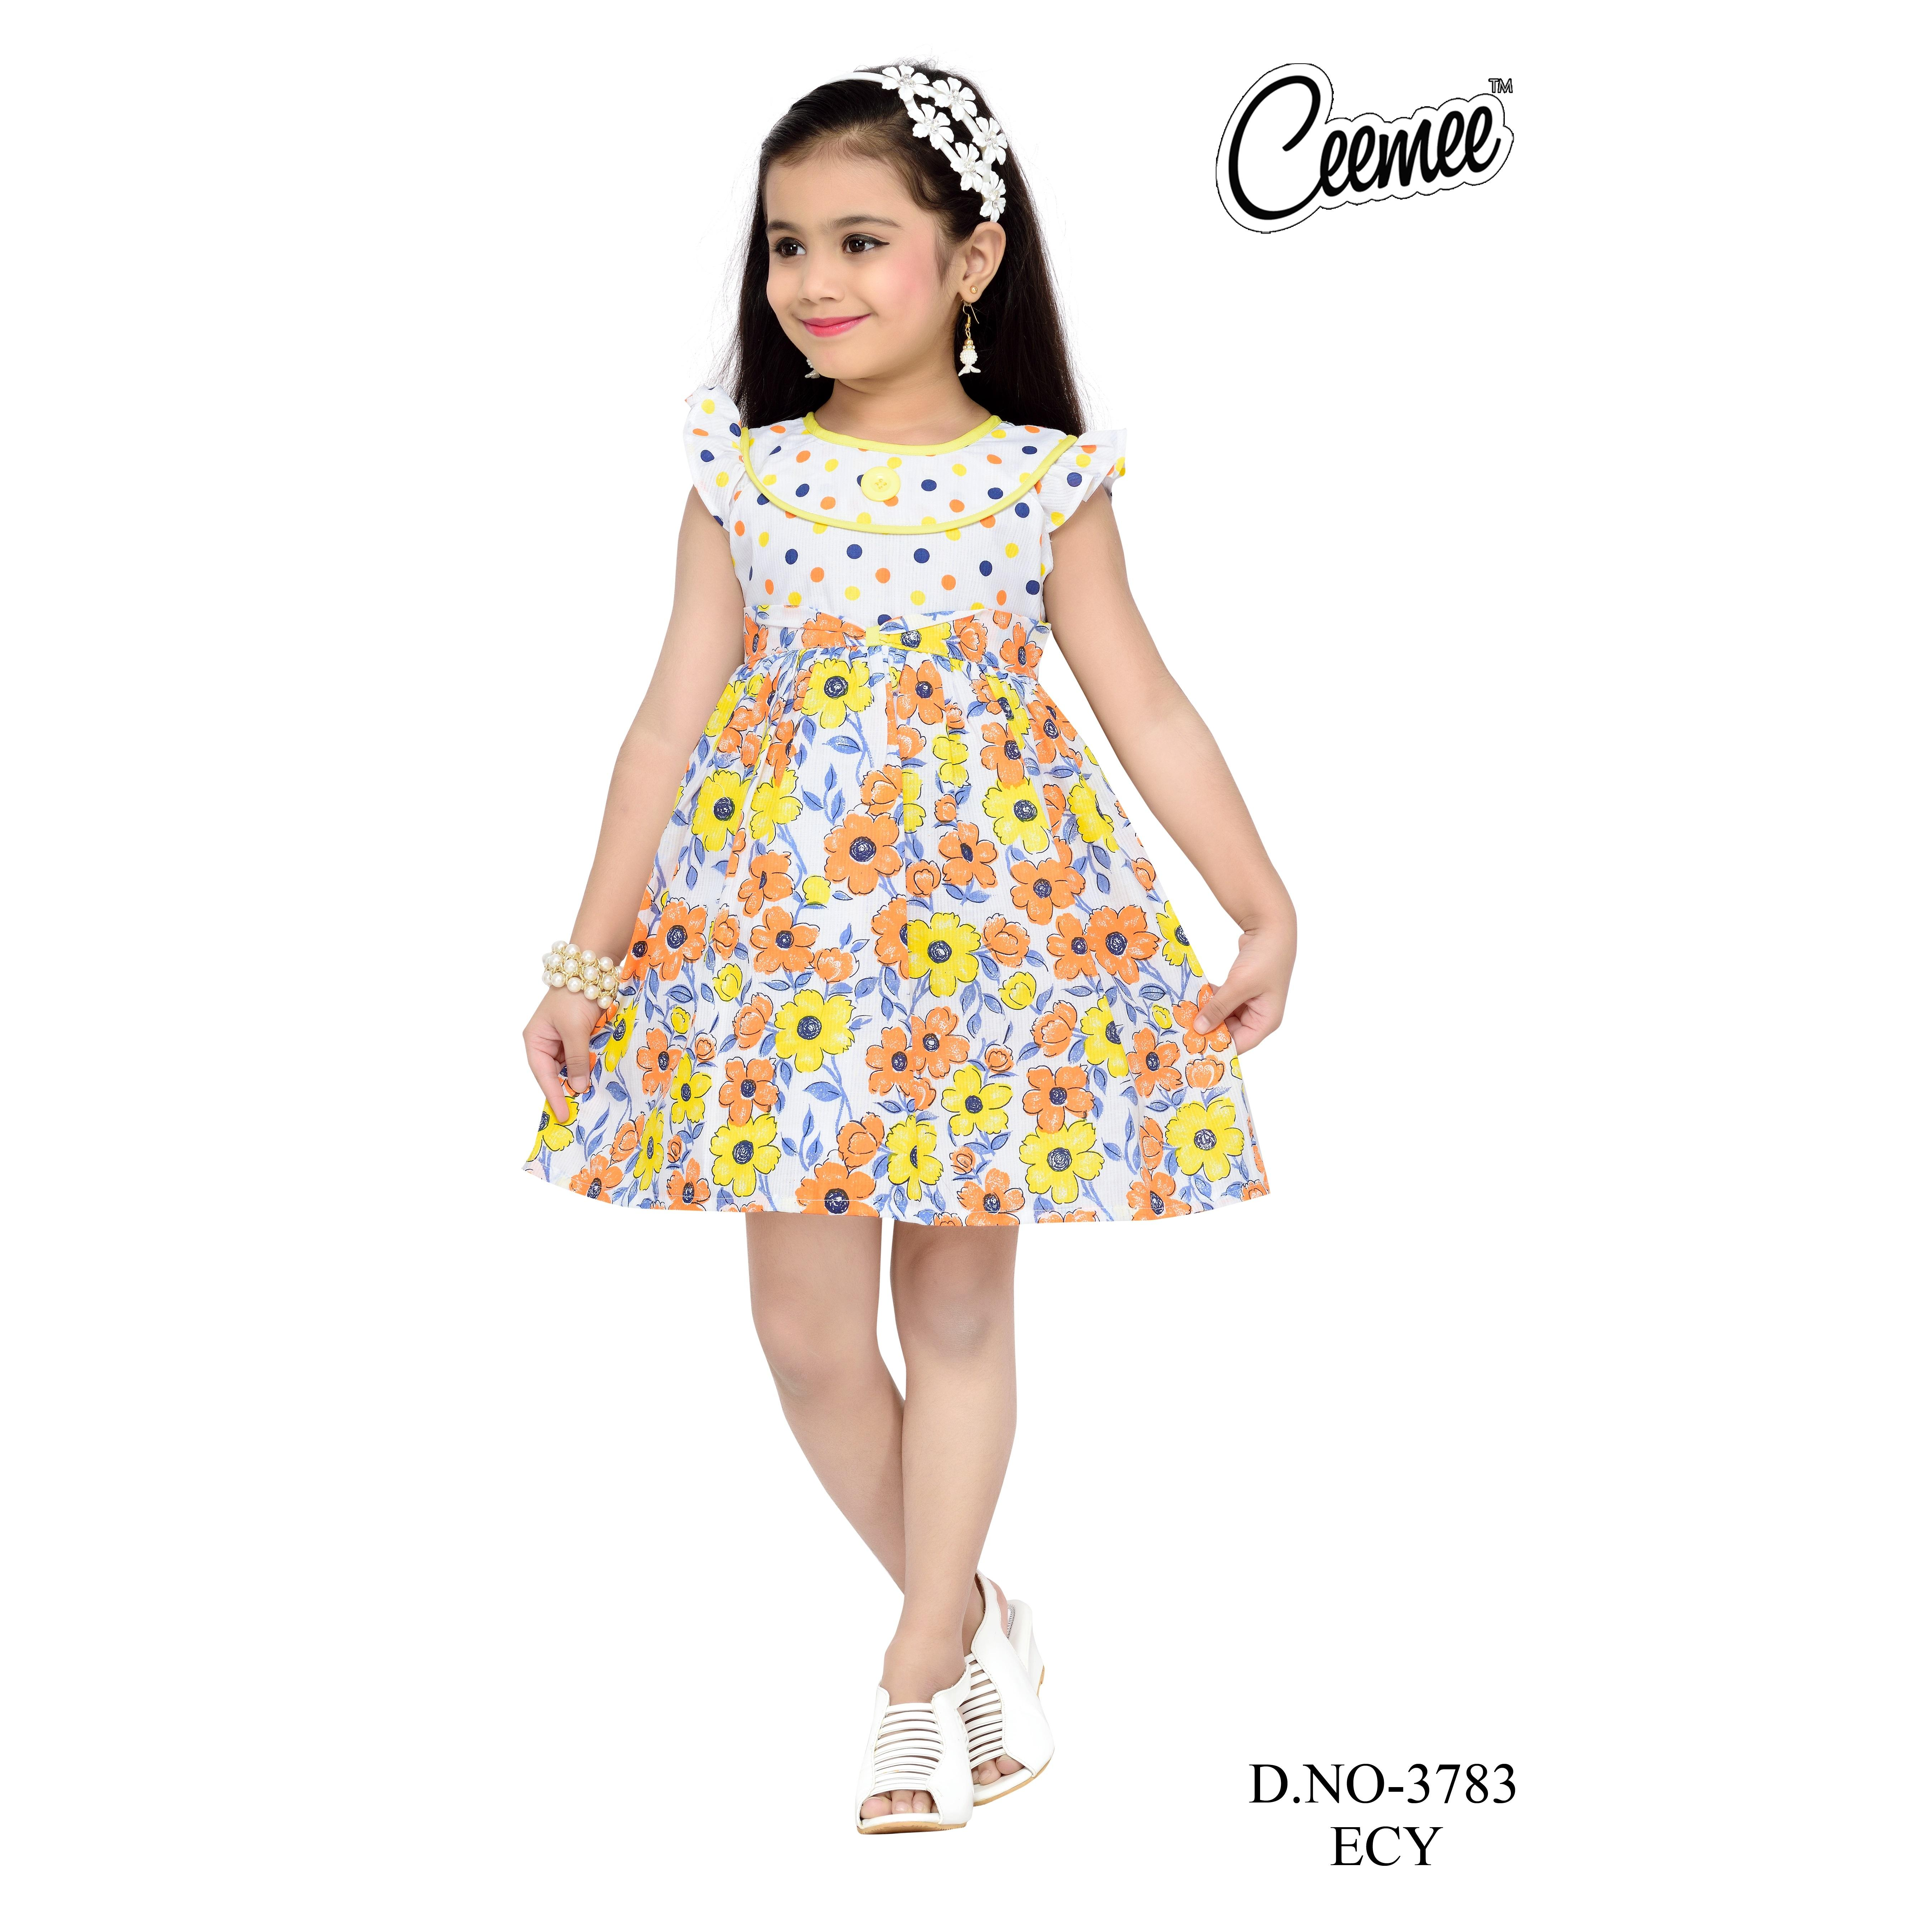 Simple Design Printed Cotton Frock For Girls Buy Children Wear Printed Design Cotton Frocks Beautiful Looking Suits Frock For Girls New Style Girls Frock Designs For Party Wear Product On Alibaba Com